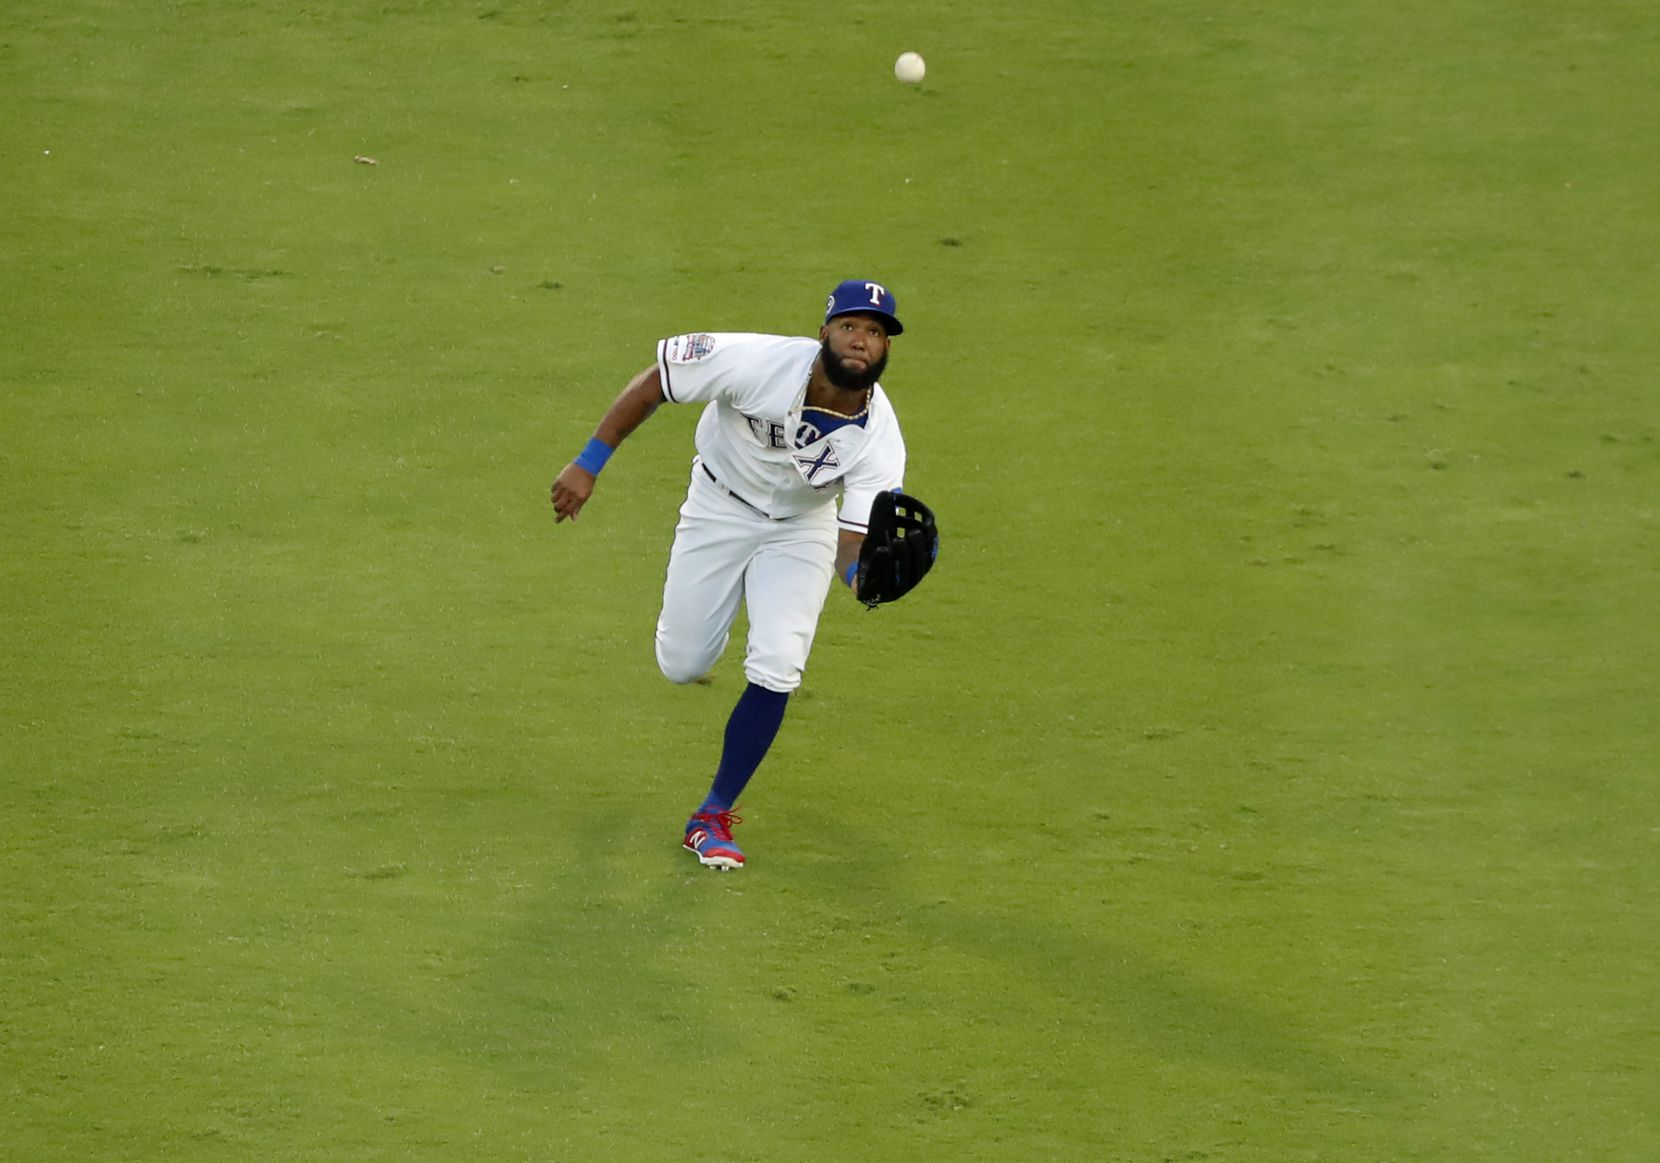 Texas Rangers center fielder Danny Santana reaches out to field a fly out by Tampa Bay Rays' Austin Meadows in the first inning of a baseball game in Arlington, Texas, Wednesday, Sept. 11, 2019. (AP Photo/Tony Gutierrez)